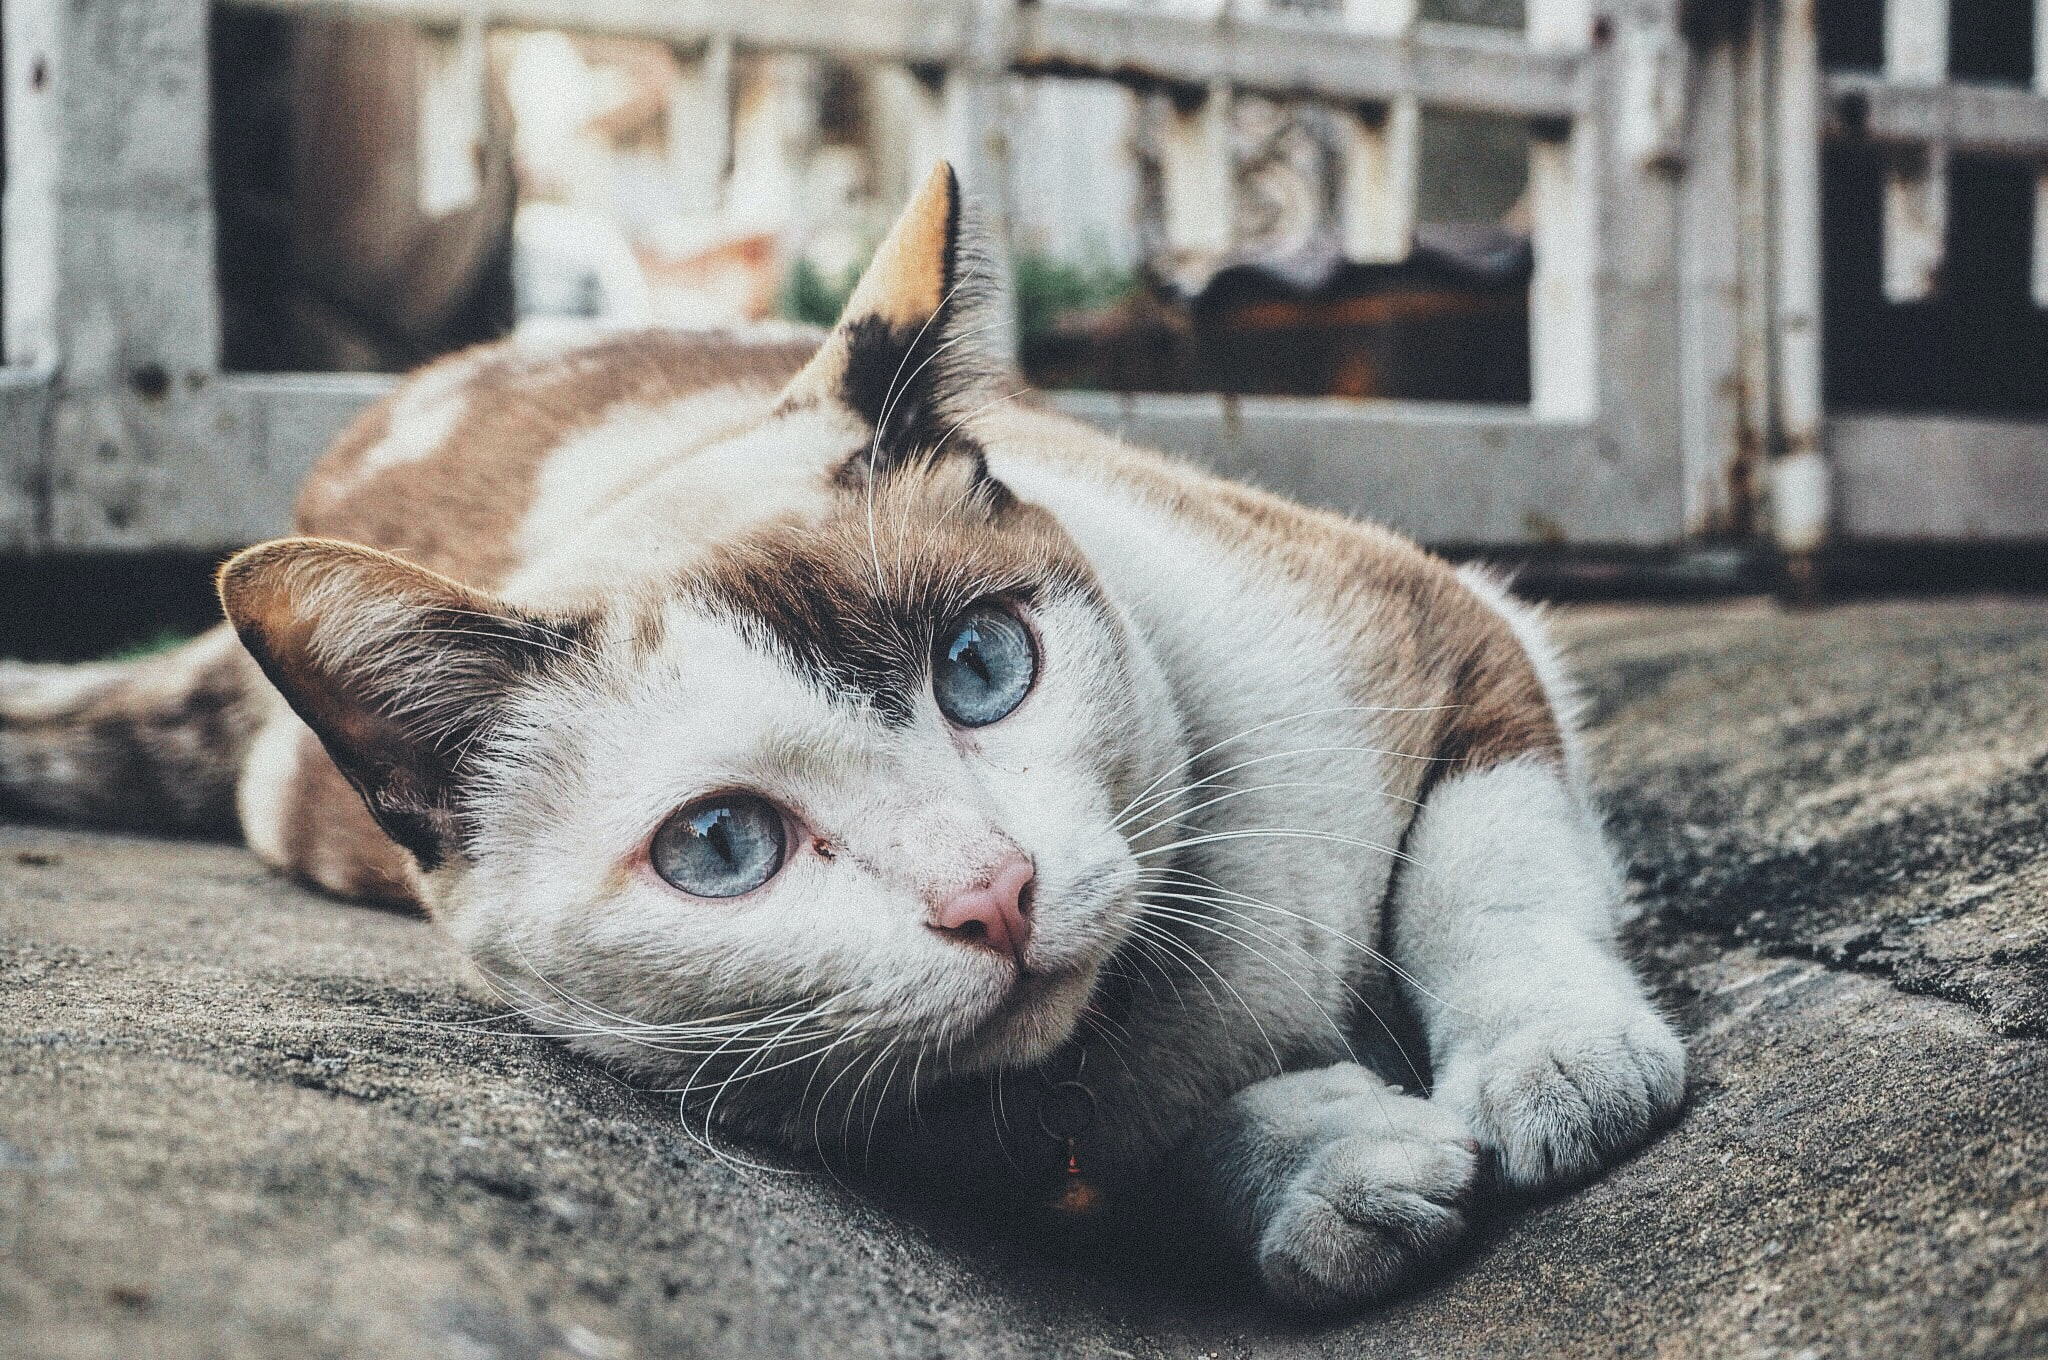 selected-focus photo of tricolor cat leaning on gray concrete paving